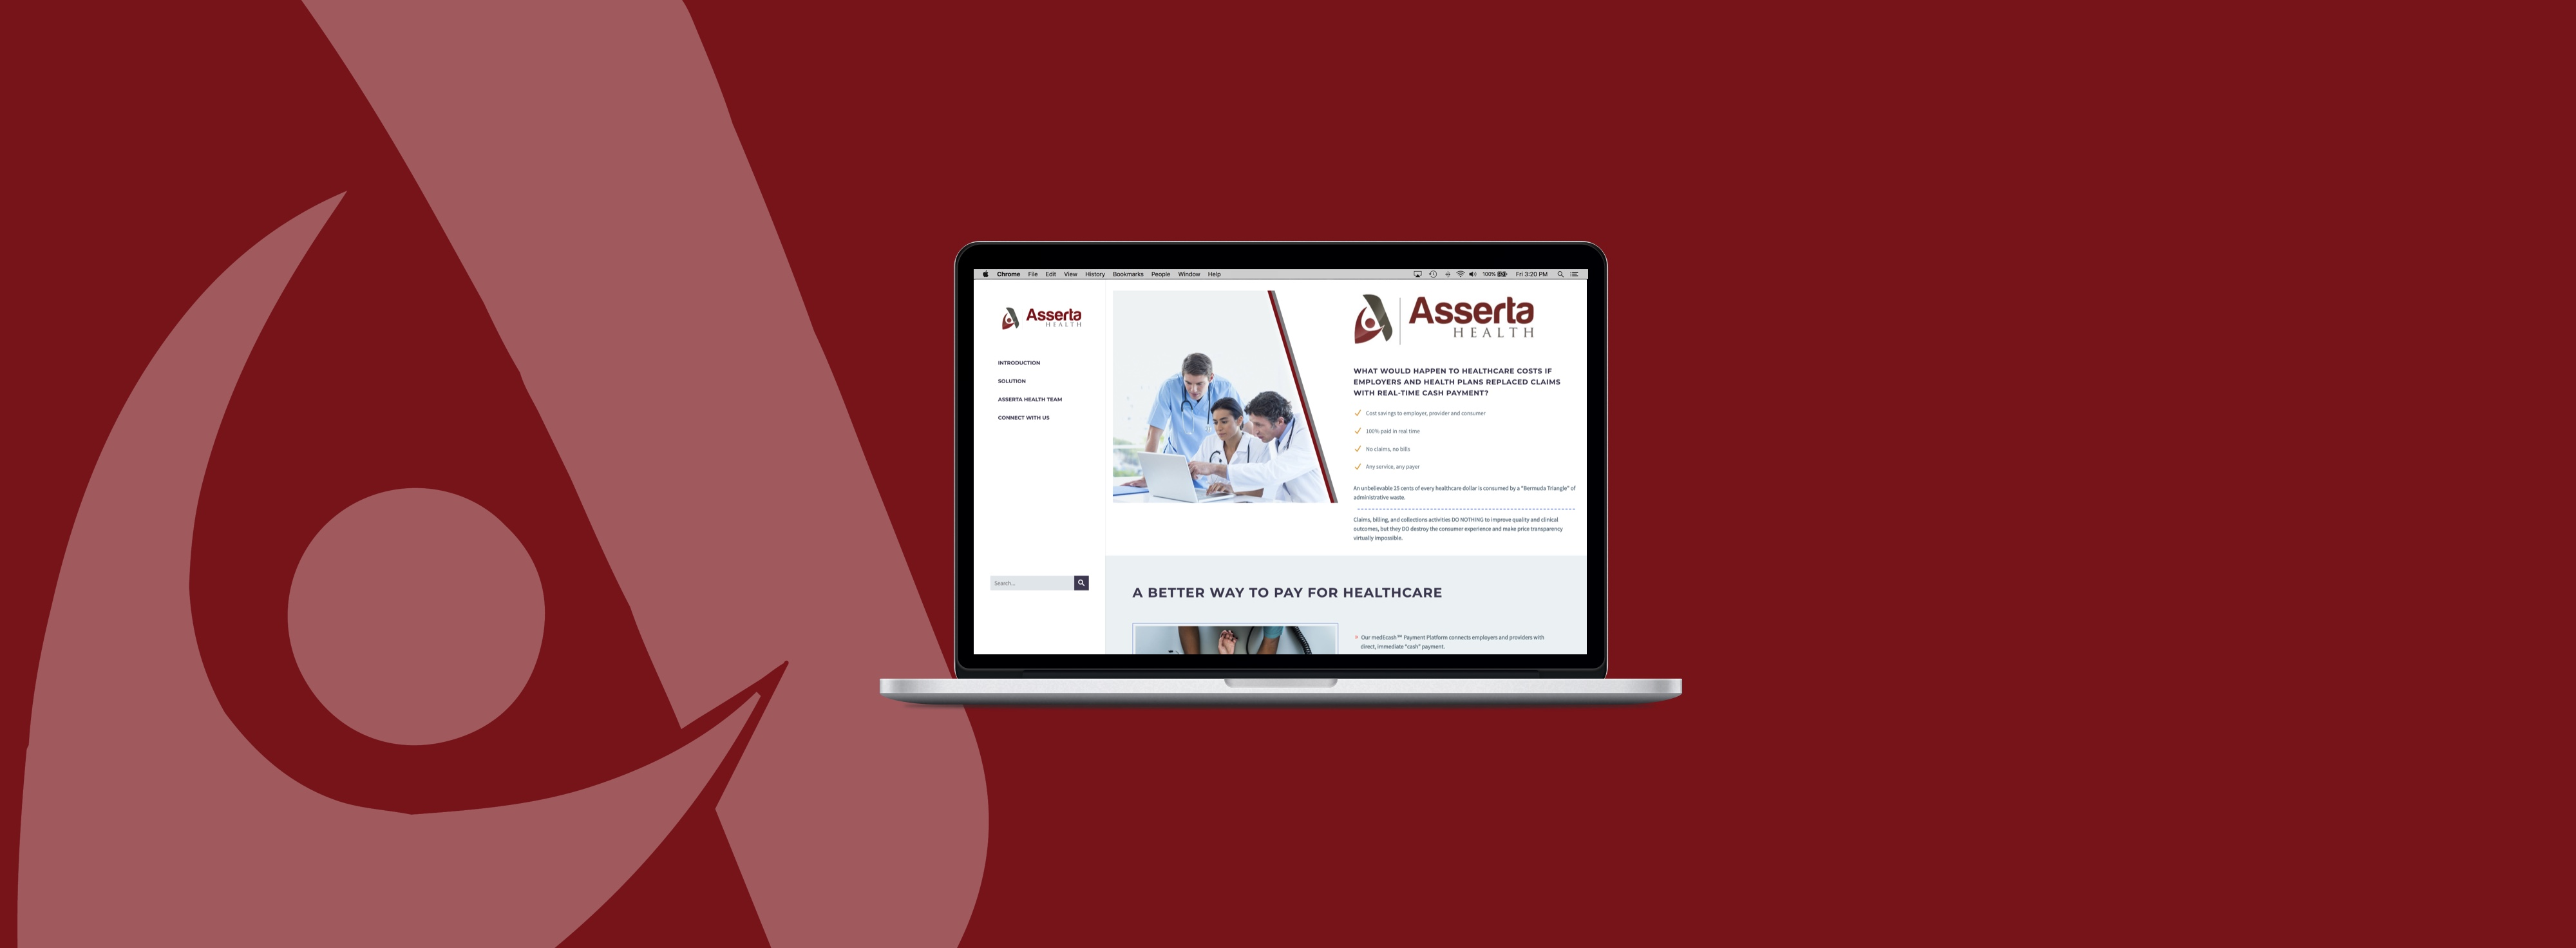 asserta health featured image